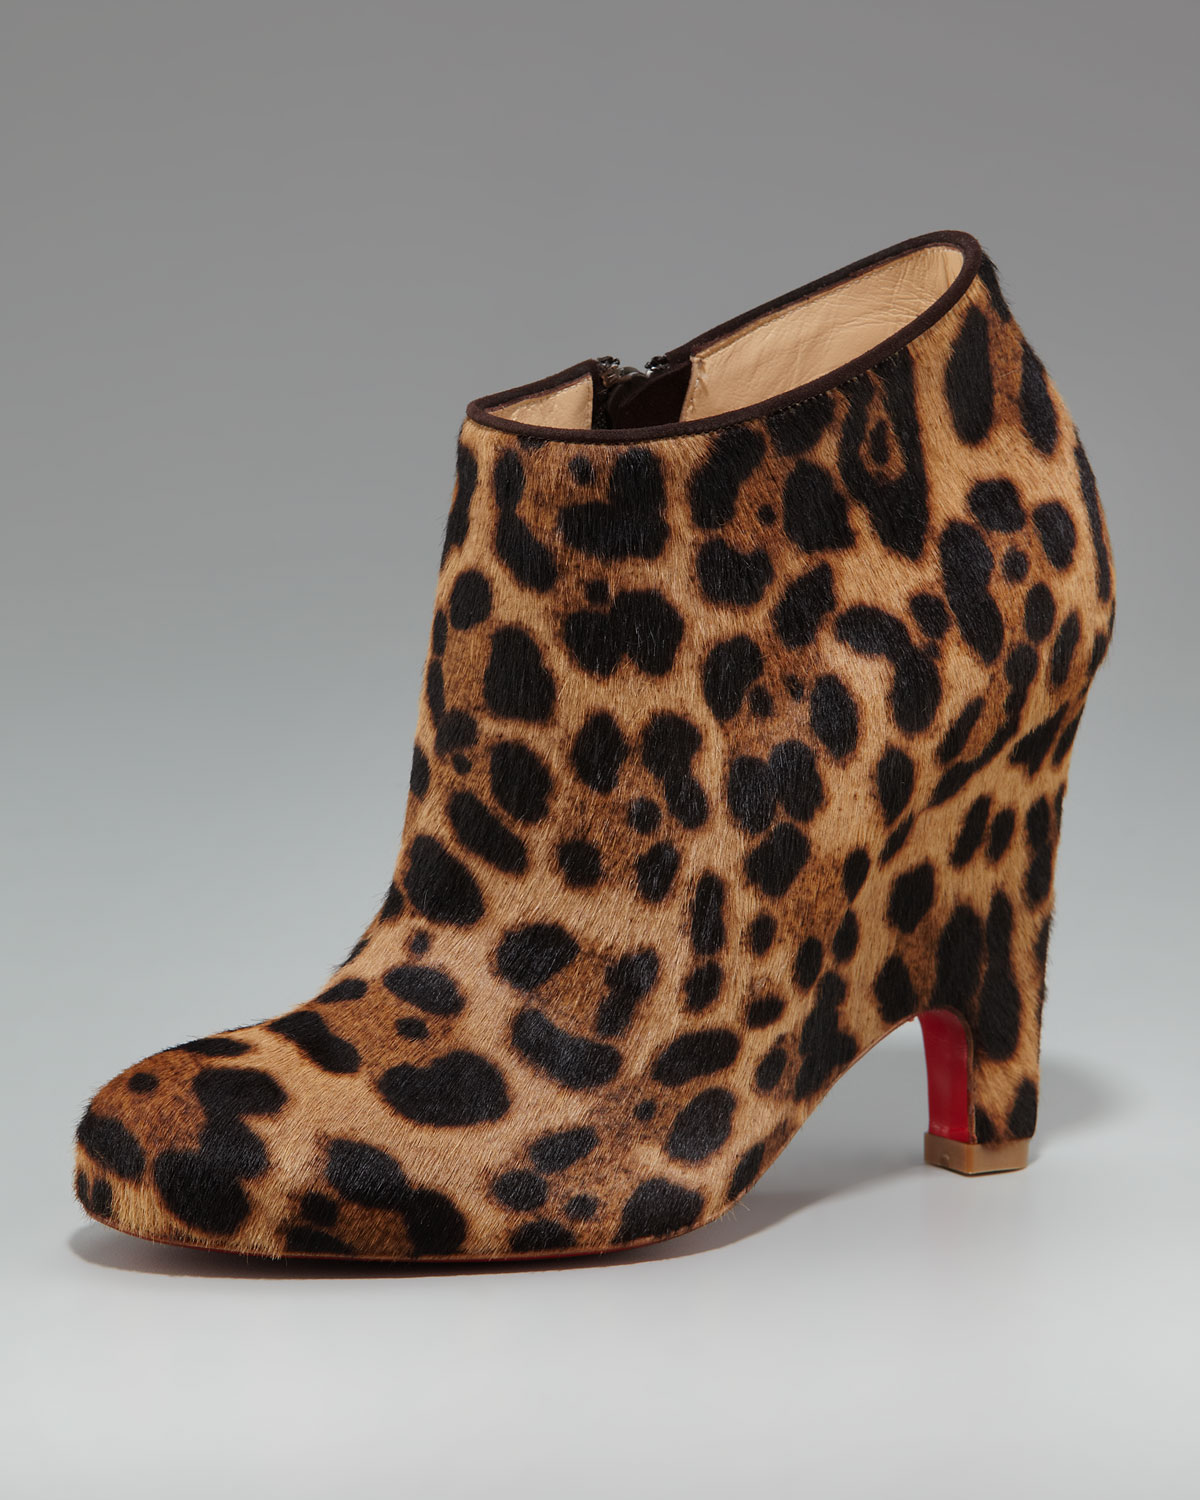 replica sneakers christian louboutin - christian louboutin round-toe ankle boots Brown ponyhair leopard ...